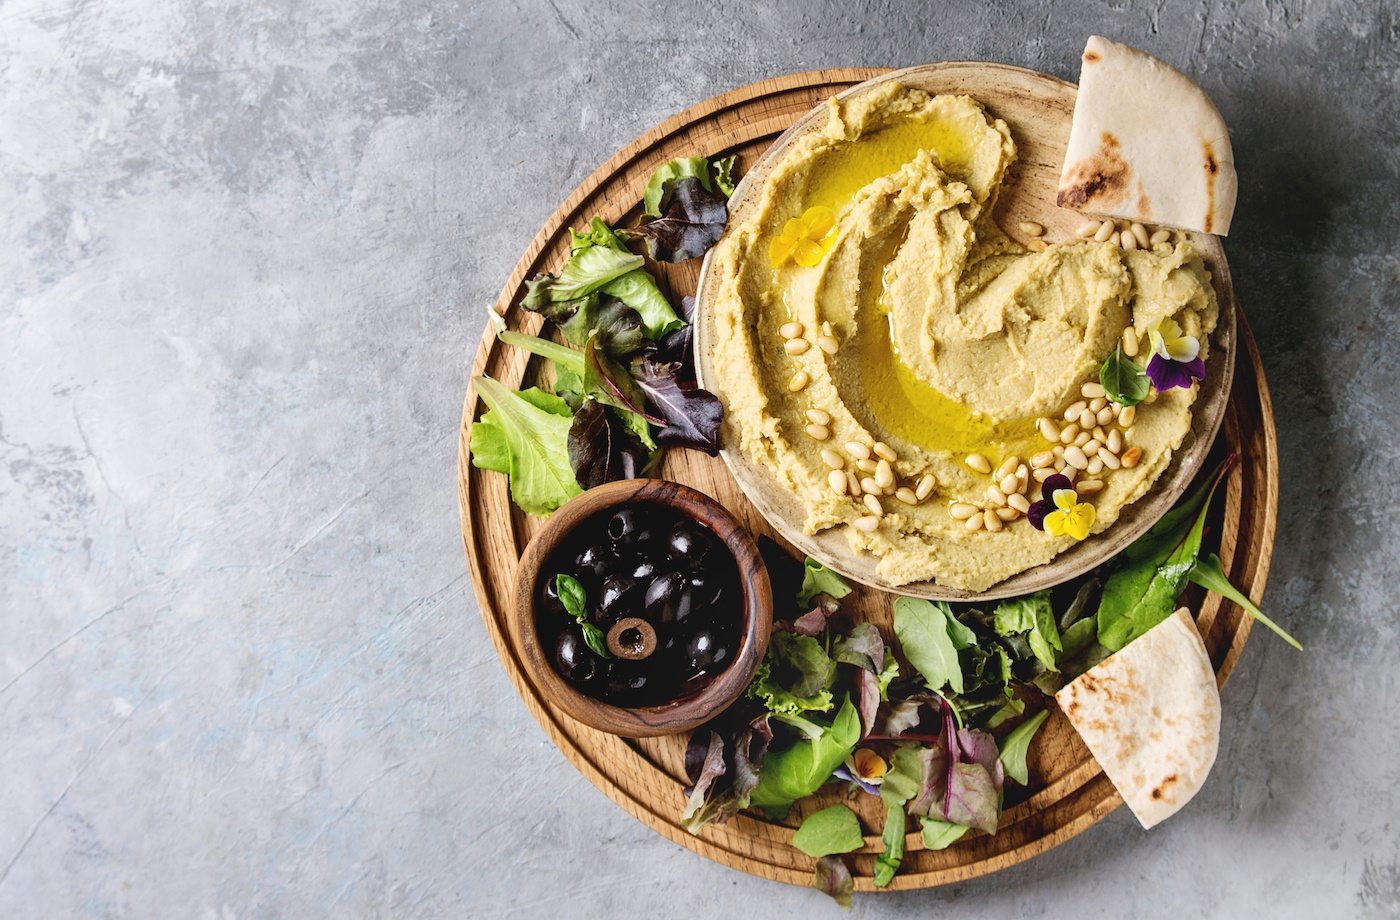 Hummus is more than a crowd-pleasing party dip—it's a nutritional goldmine